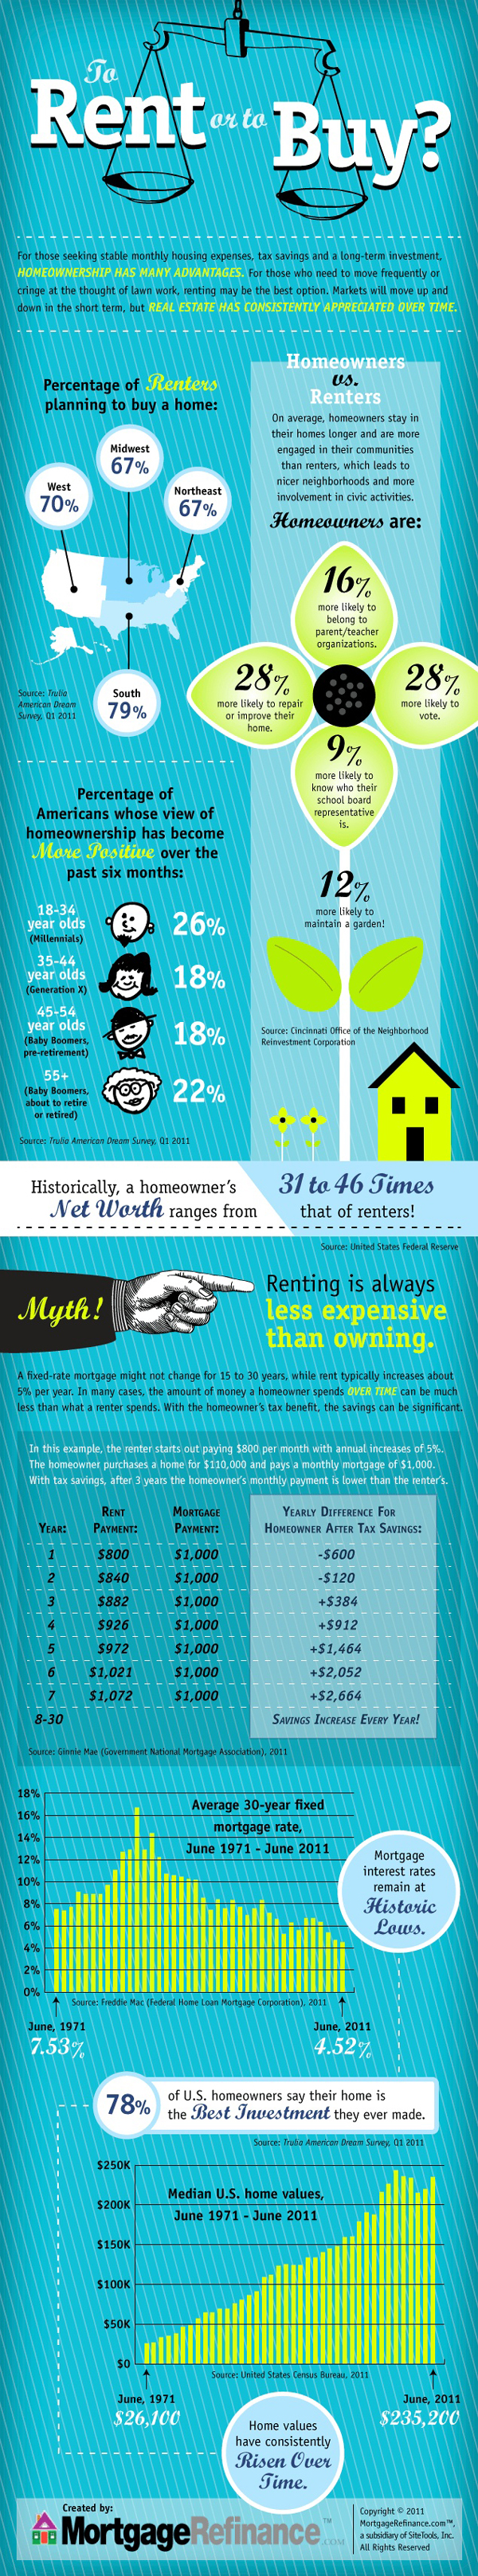 To Buy or to Rent Inforgraphic